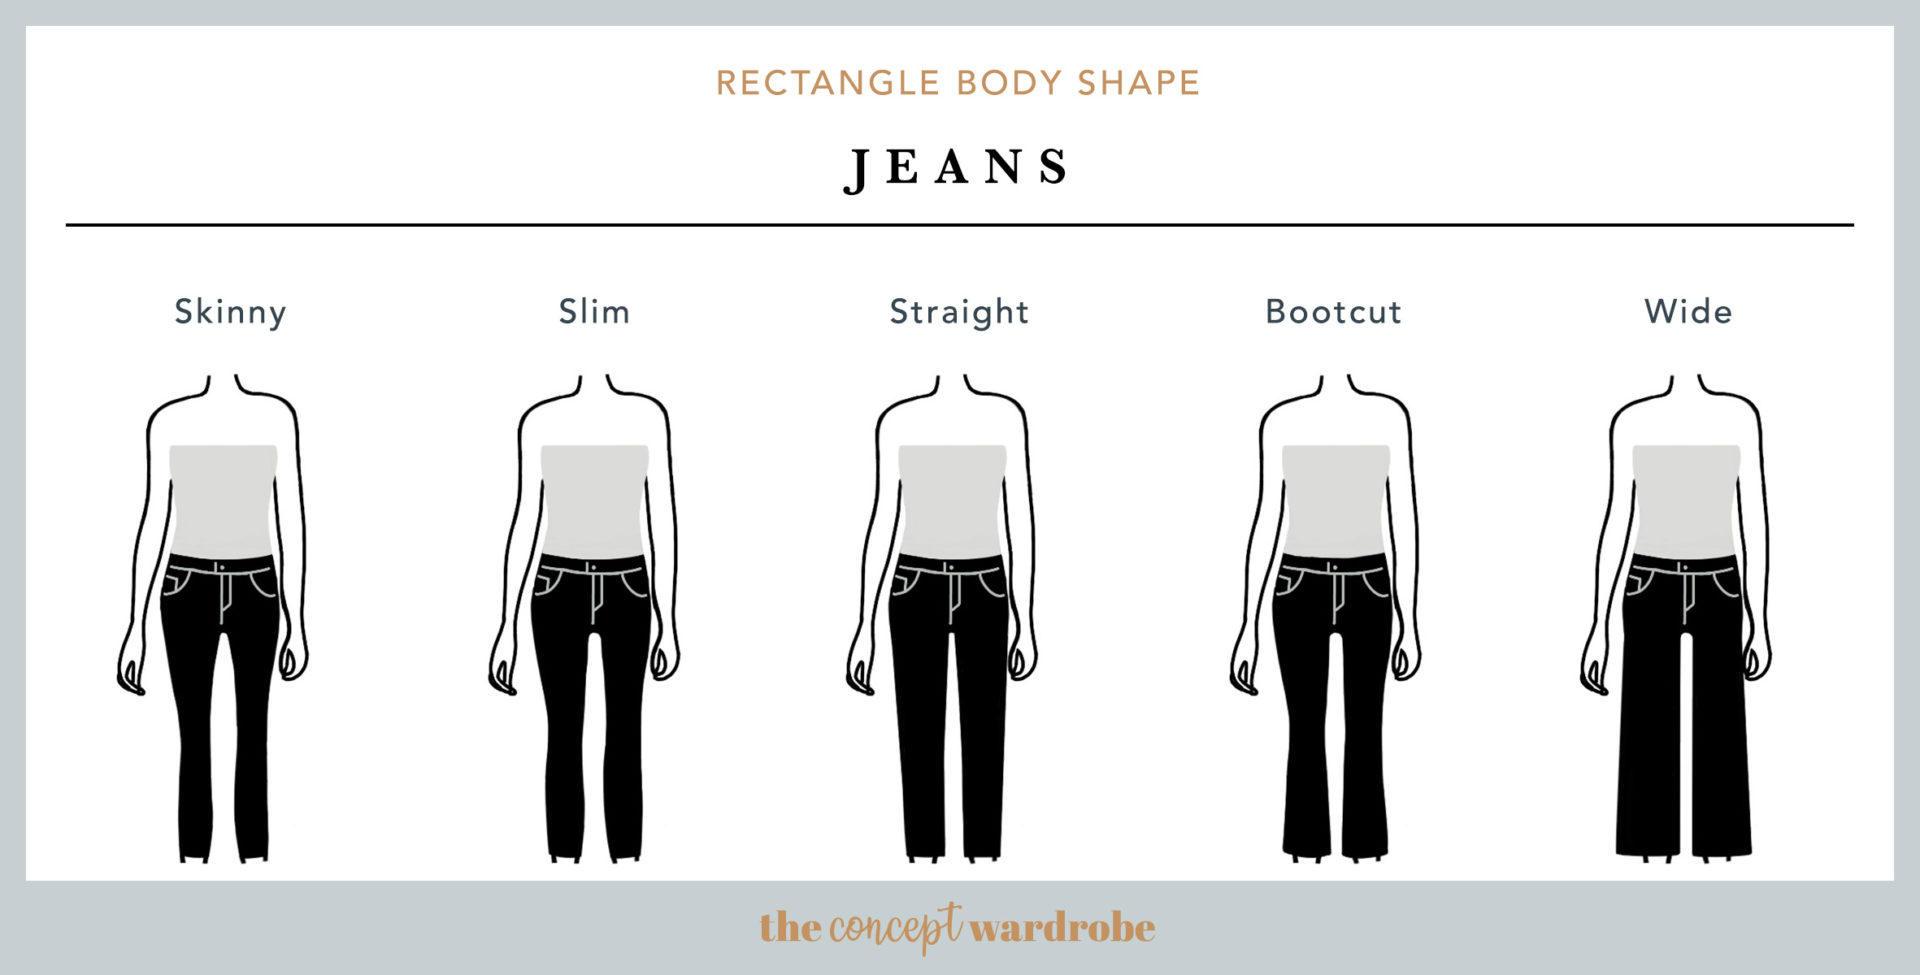 Rectangle Body Shape Jeans - the concept wardrobe